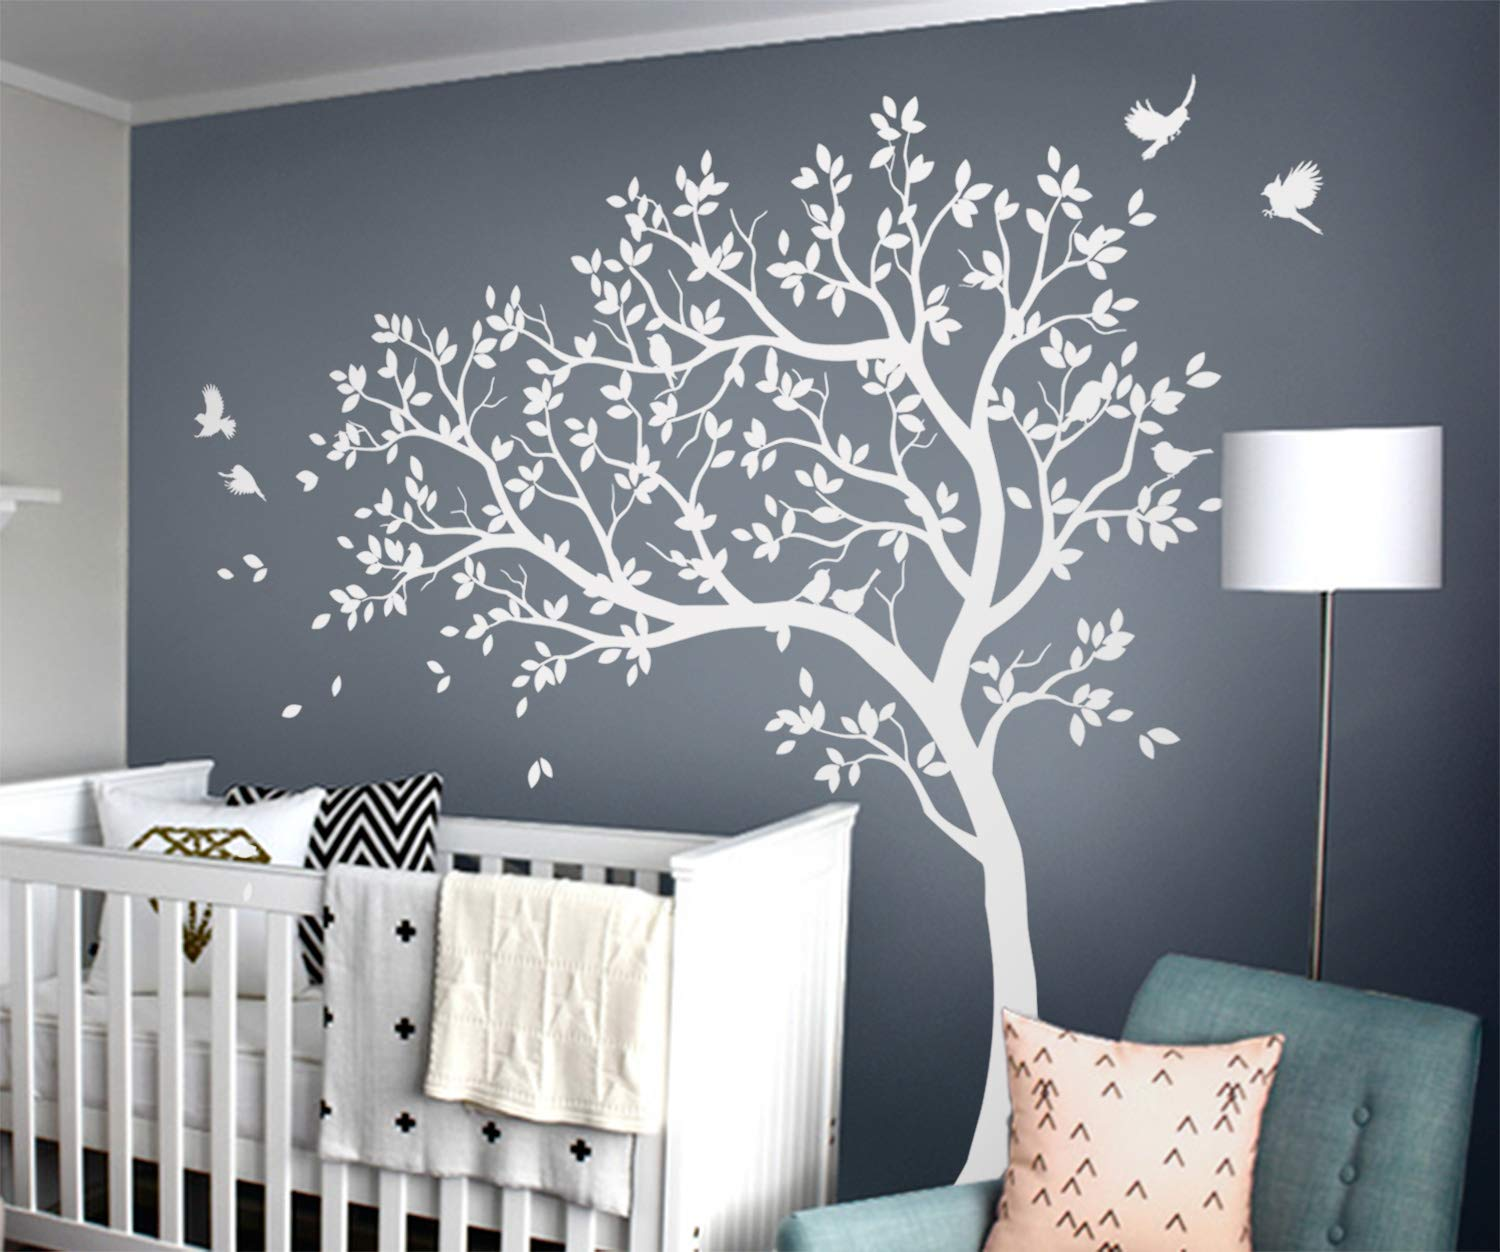 Studio Quee White Tree Wall Decals Large Nursery Tree Decals with Birds Stunning White Tree Decals Wall Tattoos Wall Mural Removable Vinyl Wall Sticker KW032_1 by Studio Quee